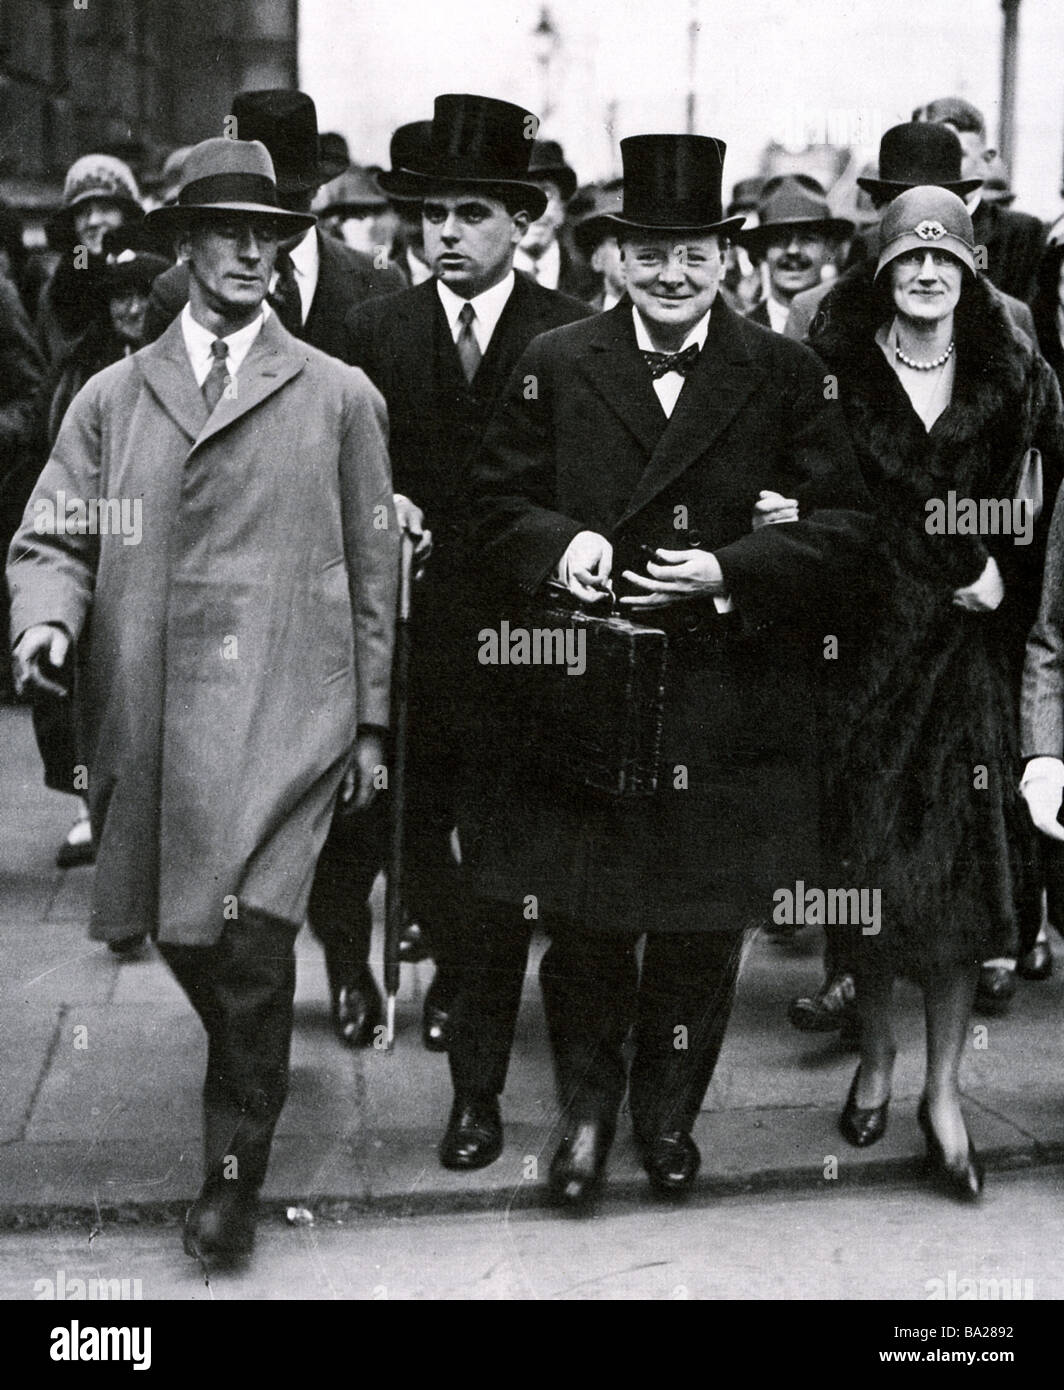 WINSTON CHURCHILL and his wife walking to the House of Commons on Budget Day 1929 when Churchill was Chancellor - Stock Image